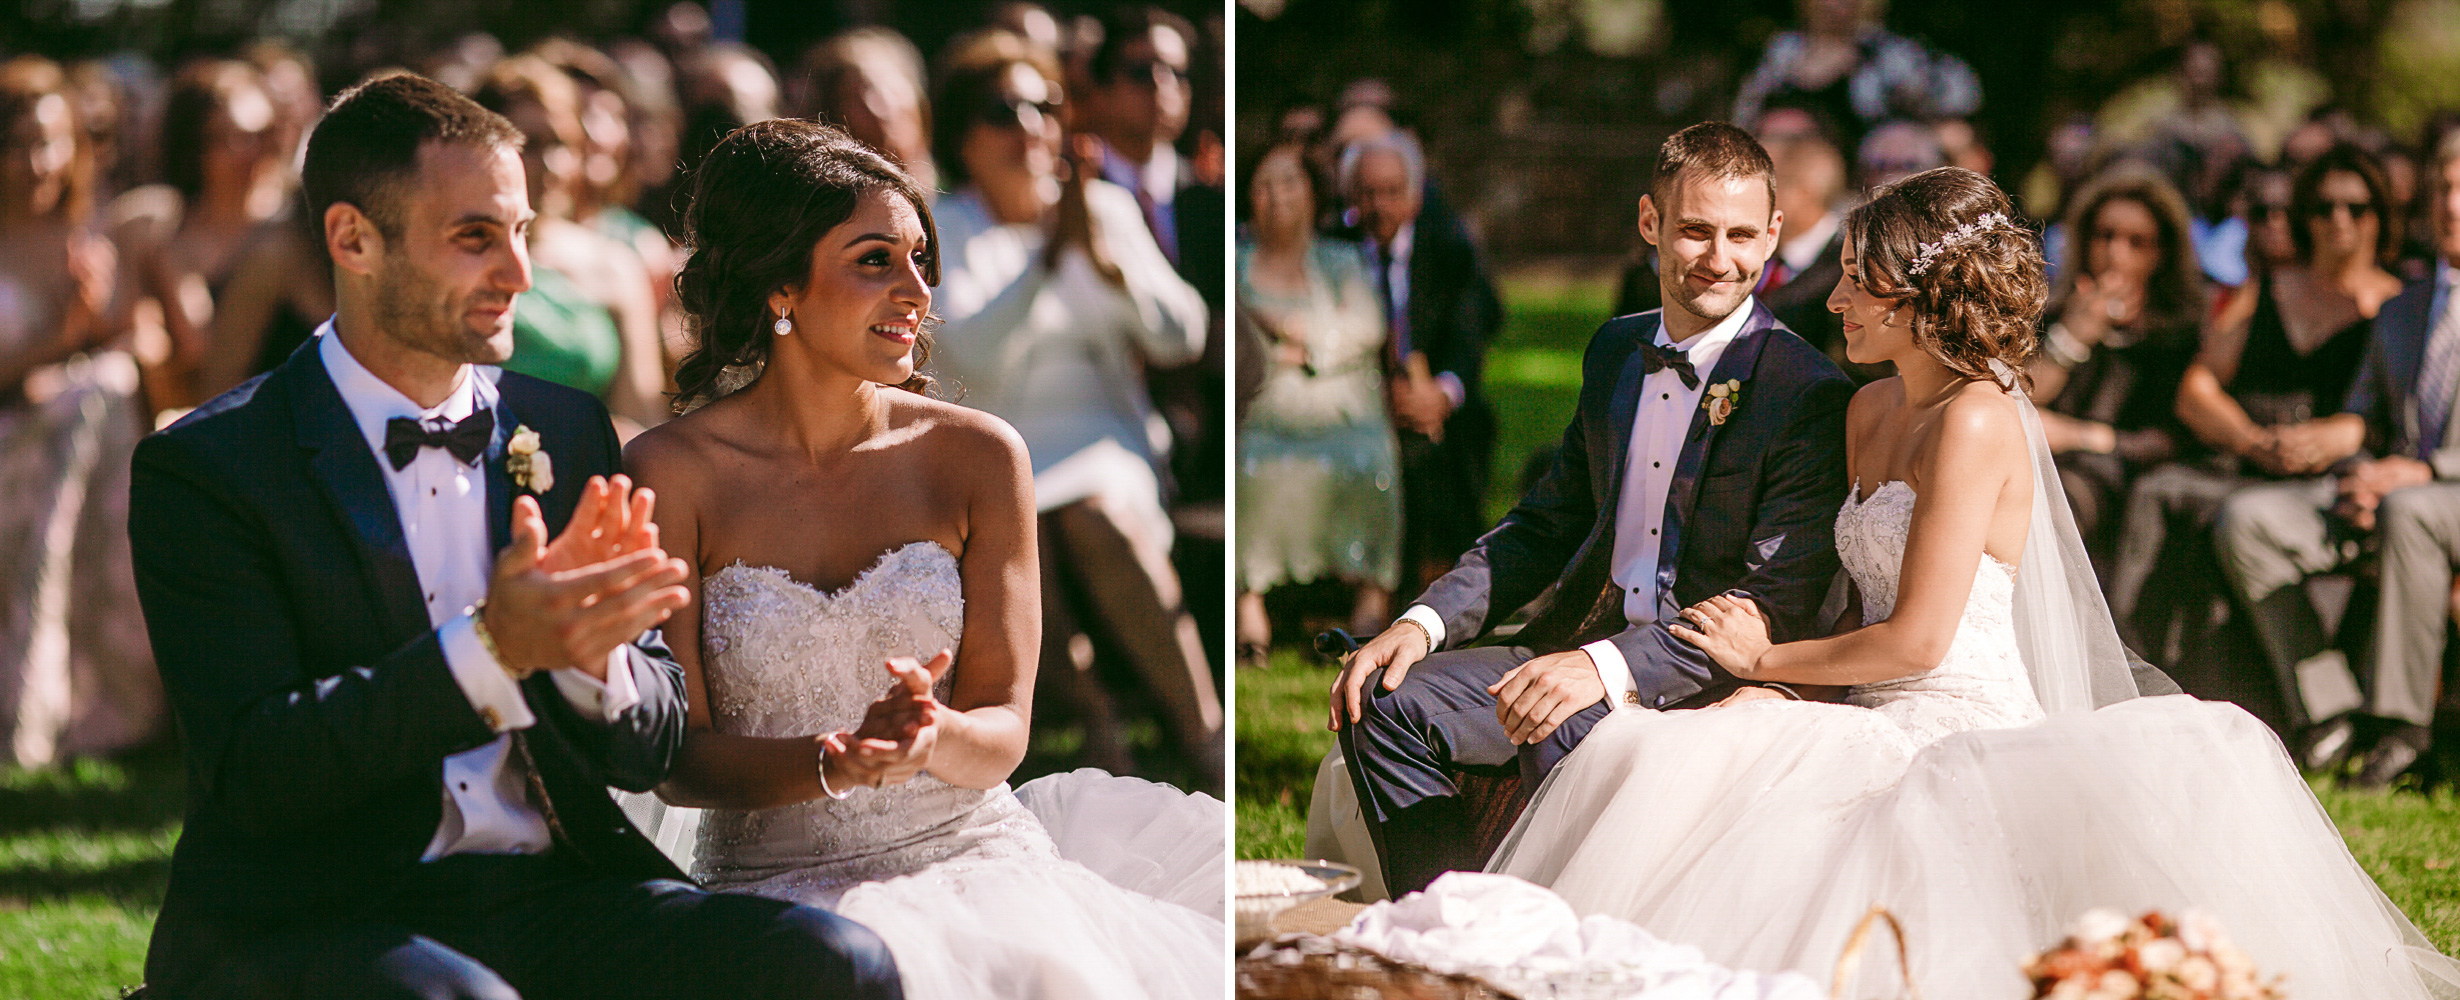 san diego wedding   photographer | collage of married couple sitting down in front of crowd